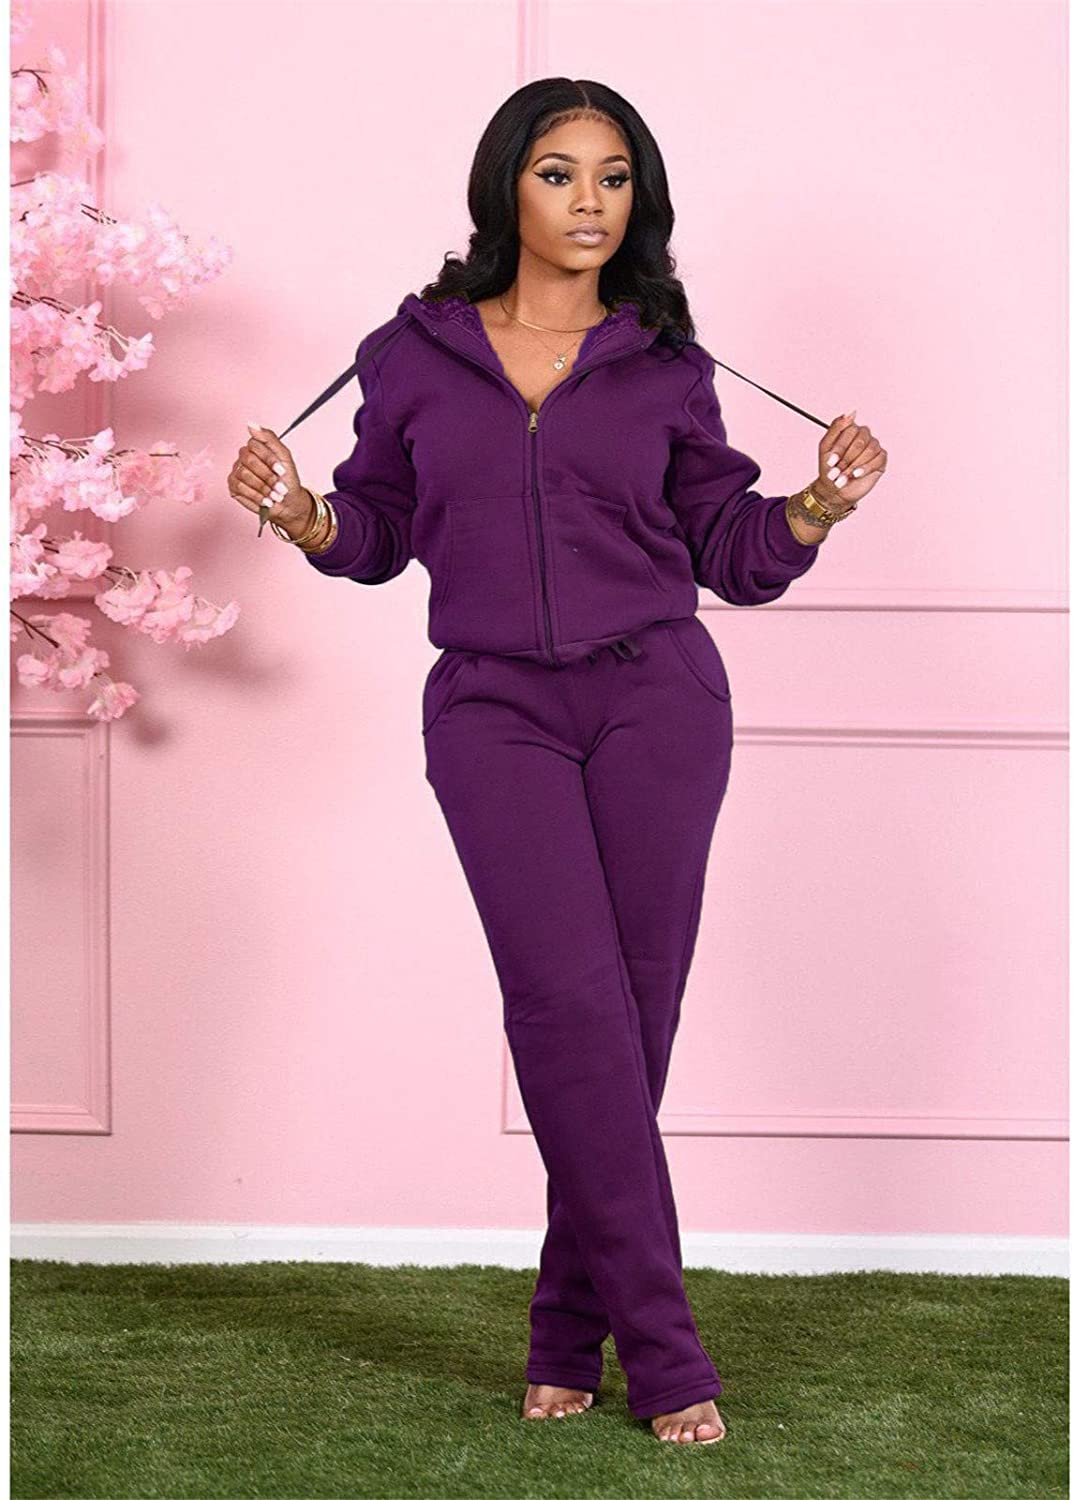 Womens Fleece Lined Two Piece Outfits Tracksuits 2 Pc Sets Jacket Hoodie Skinny Sweatpants Jogger Pants Sweatsuits